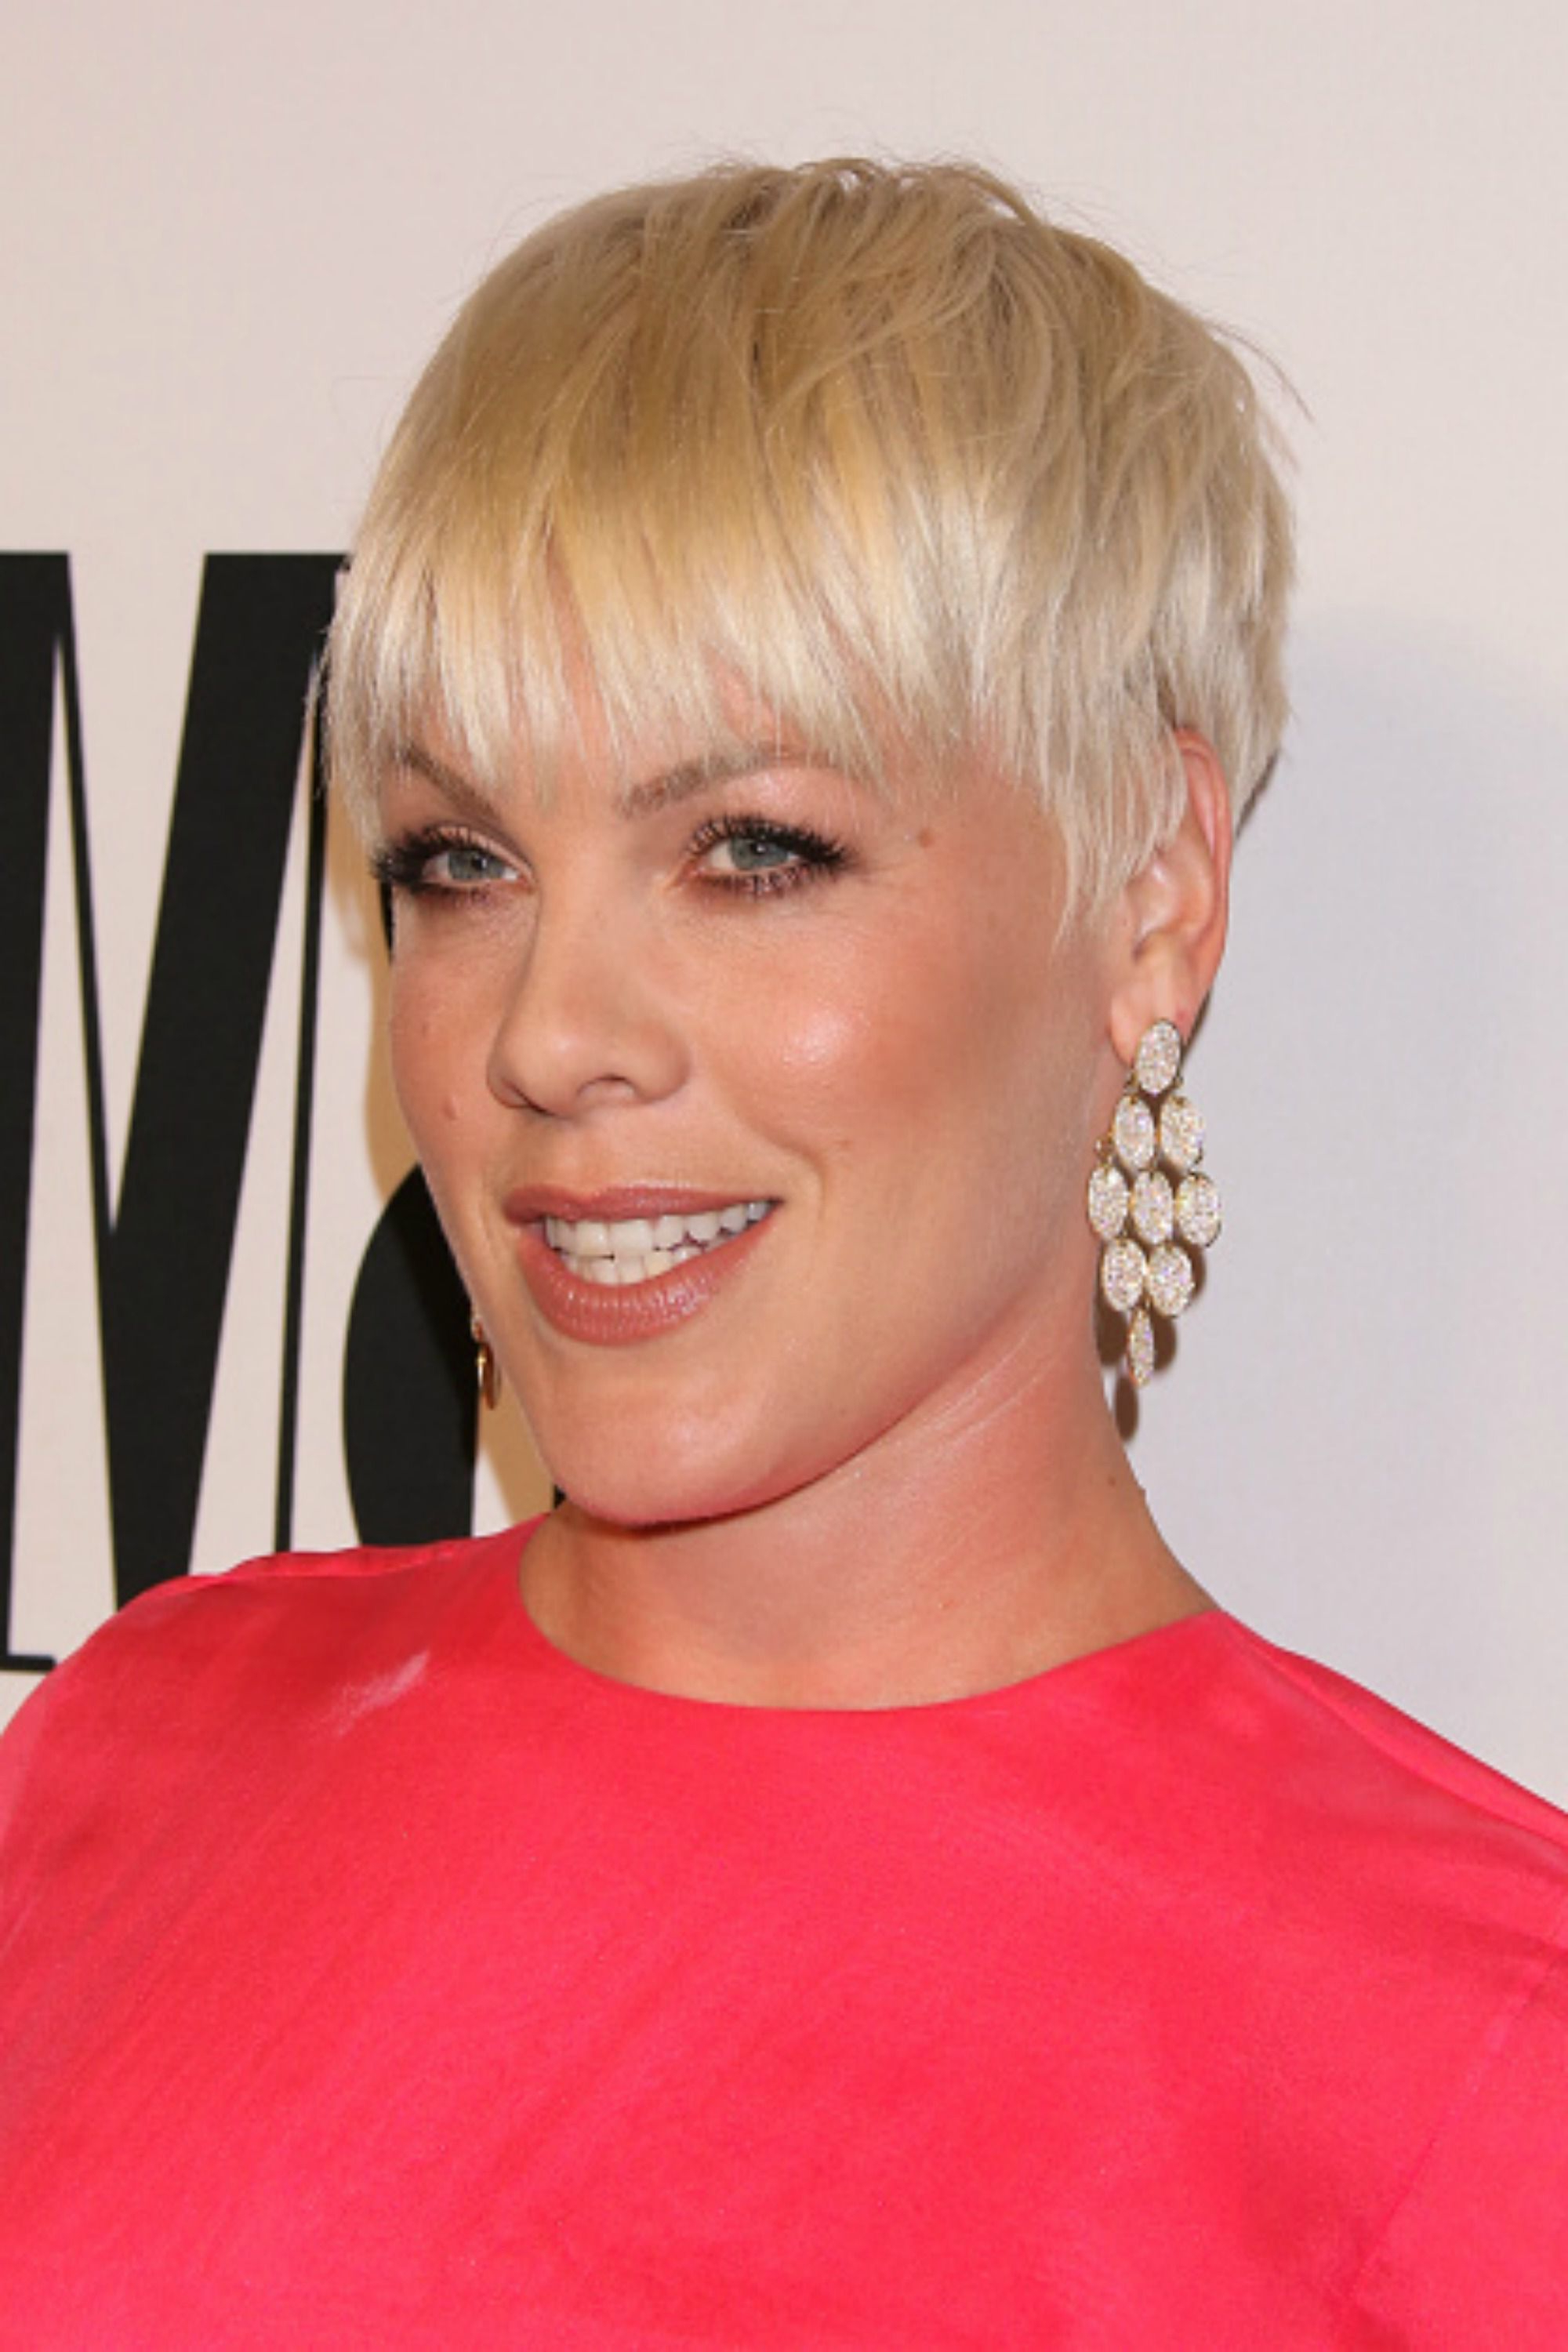 30 Short Hairstyles For Thick Hair 2017 – Women's Haircuts For Short With Regard To Gray Pixie Hairstyles For Thick Hair (View 8 of 20)